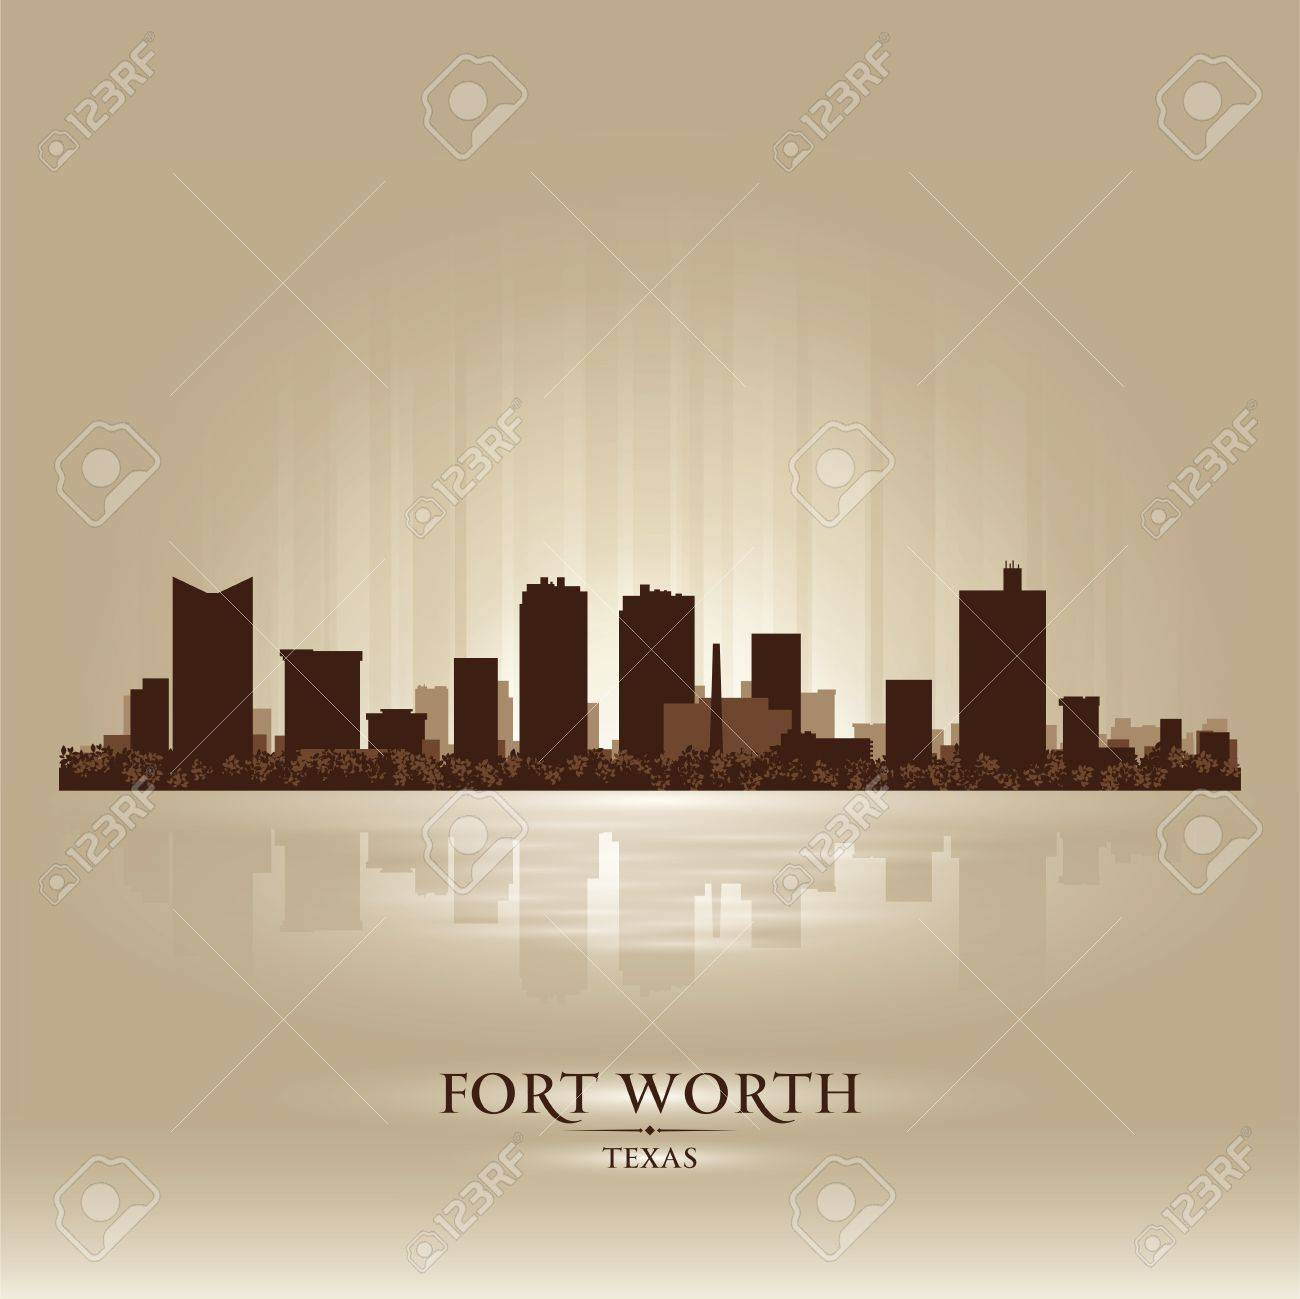 Fort Worth Texas city skyline silhouette. Vector illustration Stock Vector - 18671028